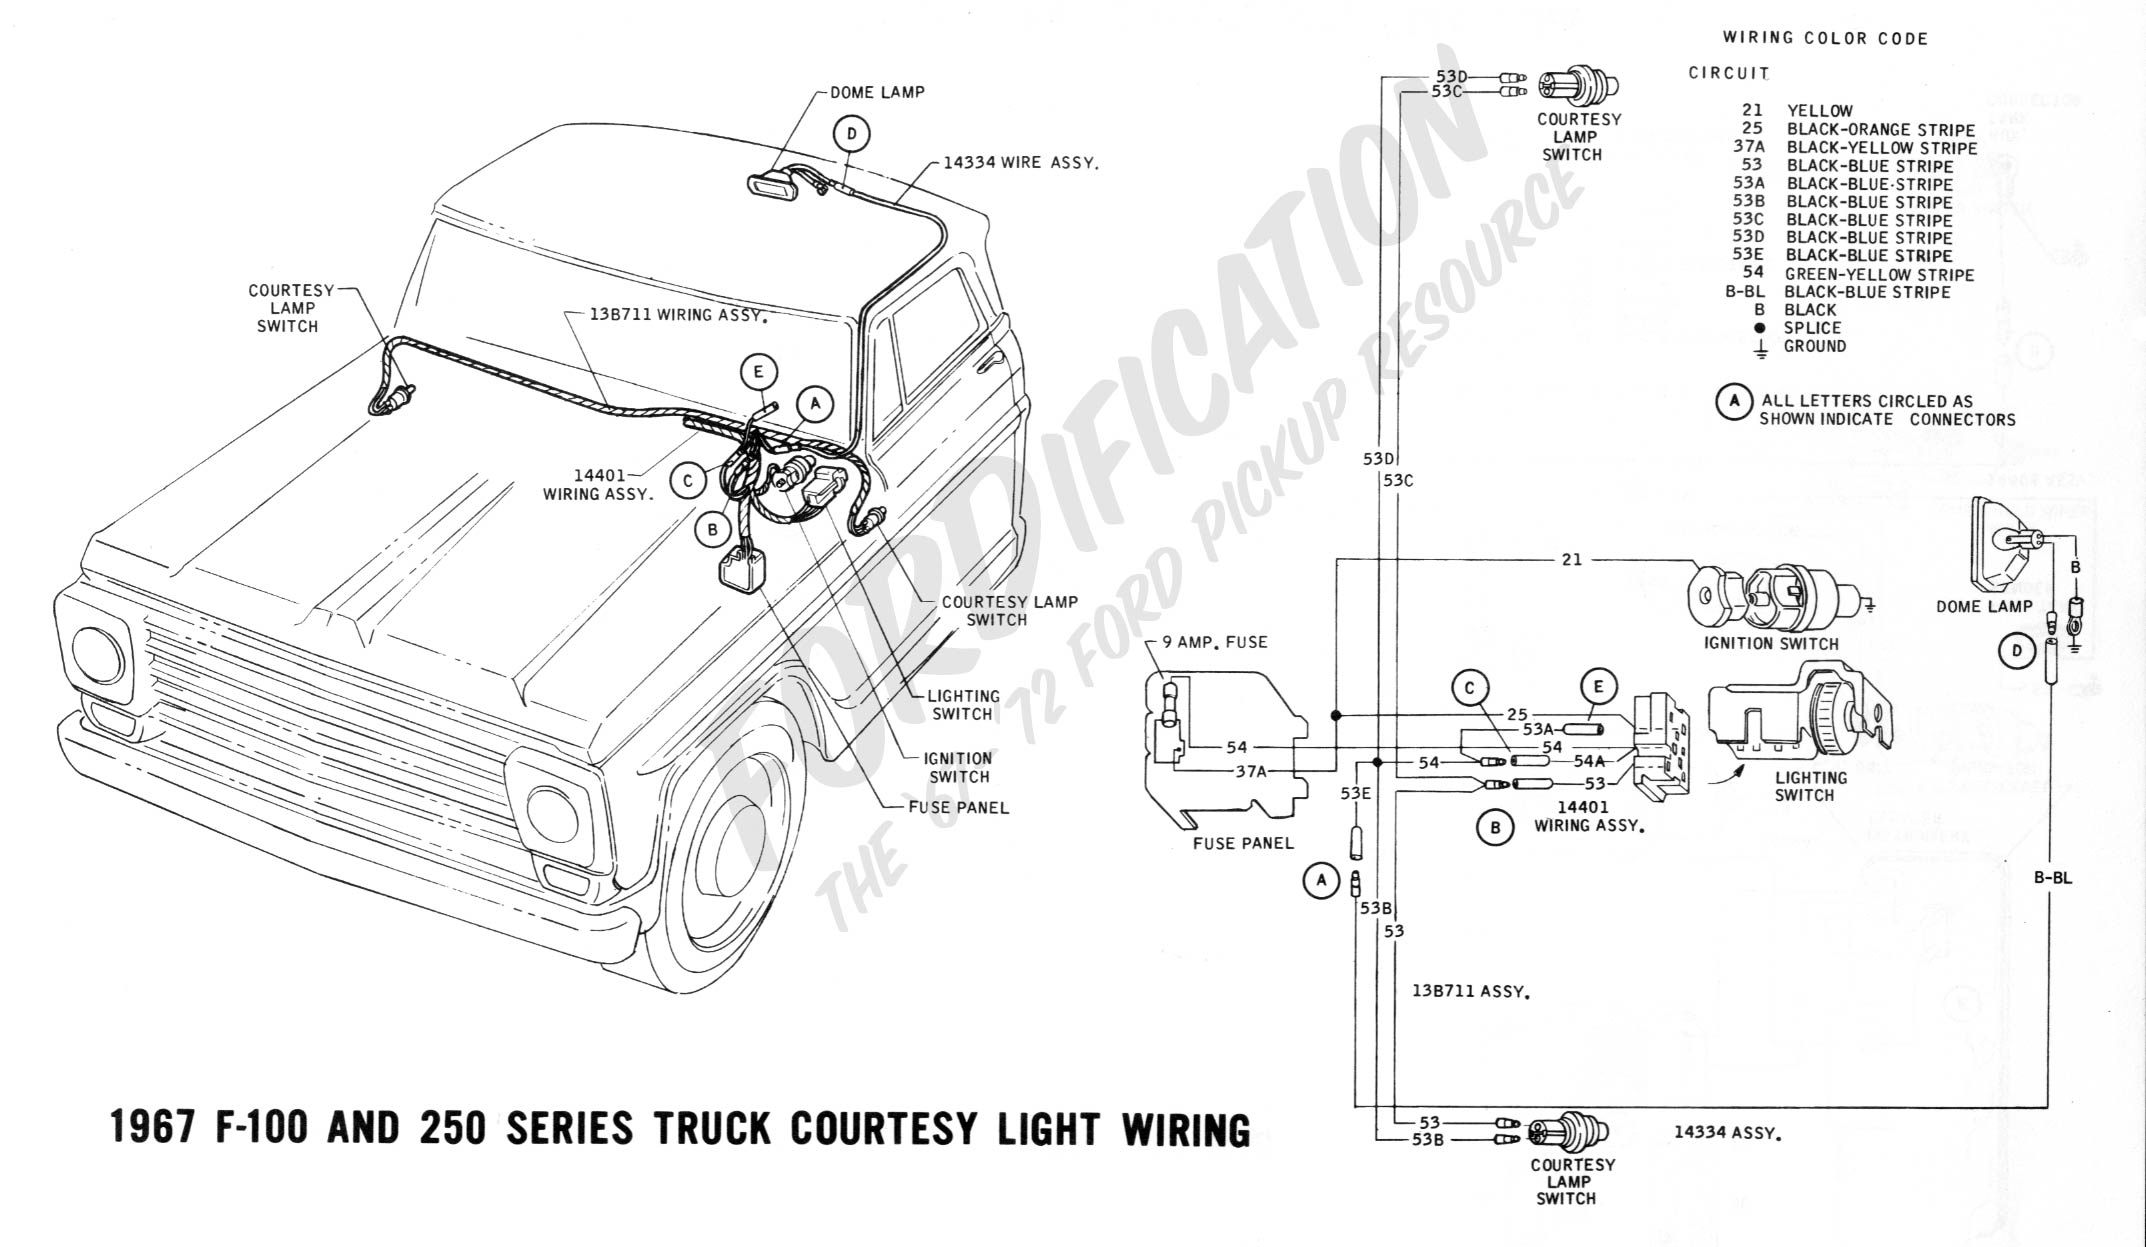 wiring 1967courtesylight wiring in ignition switch in 1966 f100 ford truck enthusiasts forums 1969 mustang ignition switch wiring diagram at soozxer.org